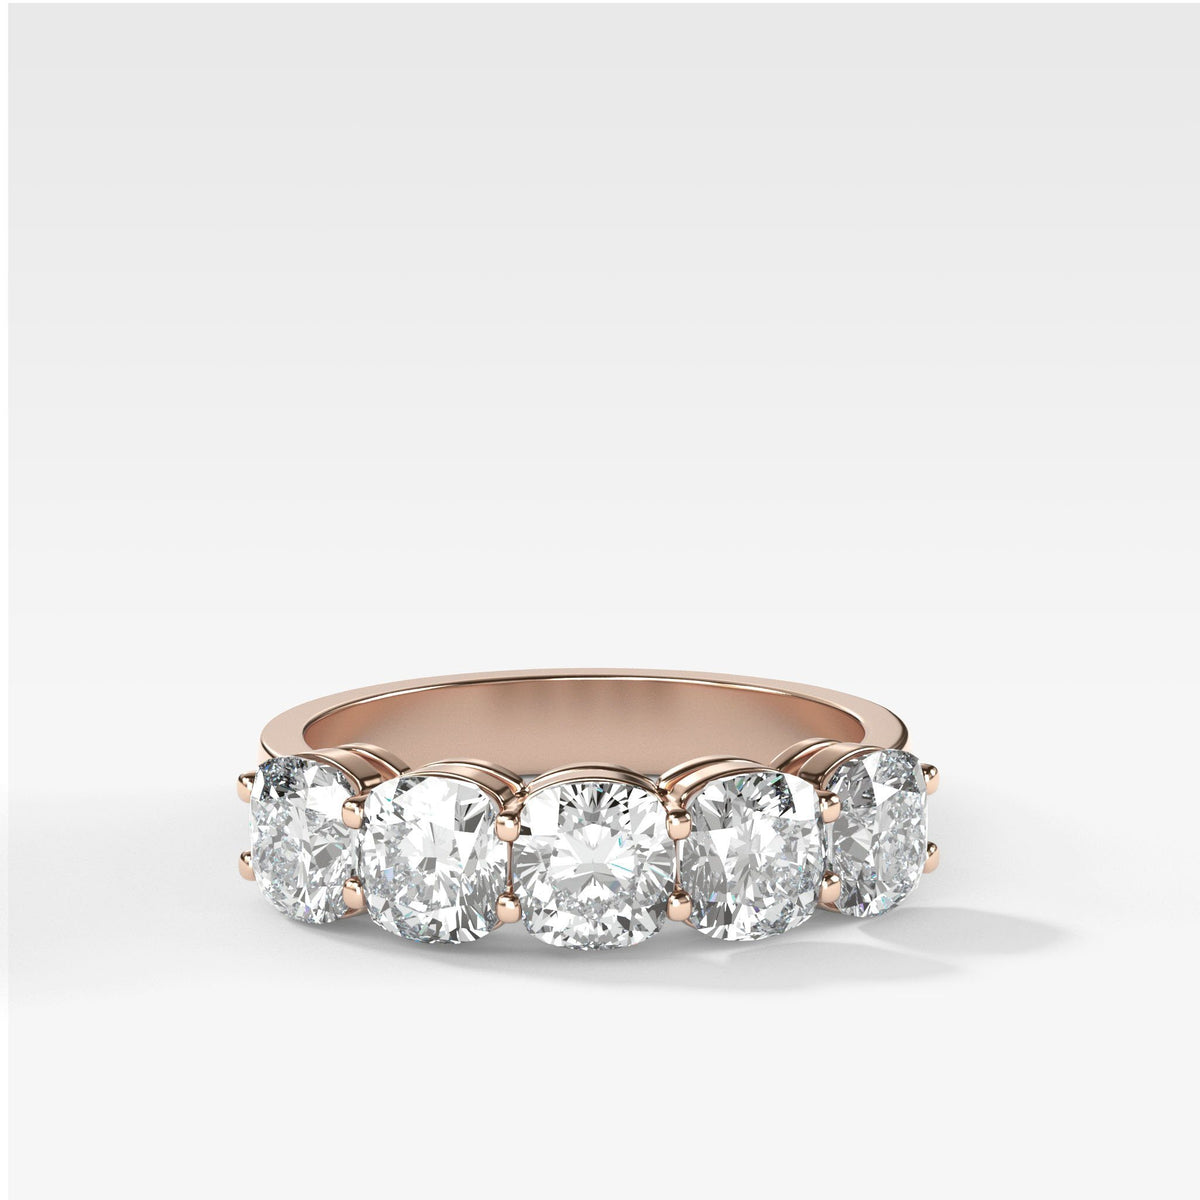 Five Stone Cushion Cut Diamond Band Ring in Rose Gold by Good Stone